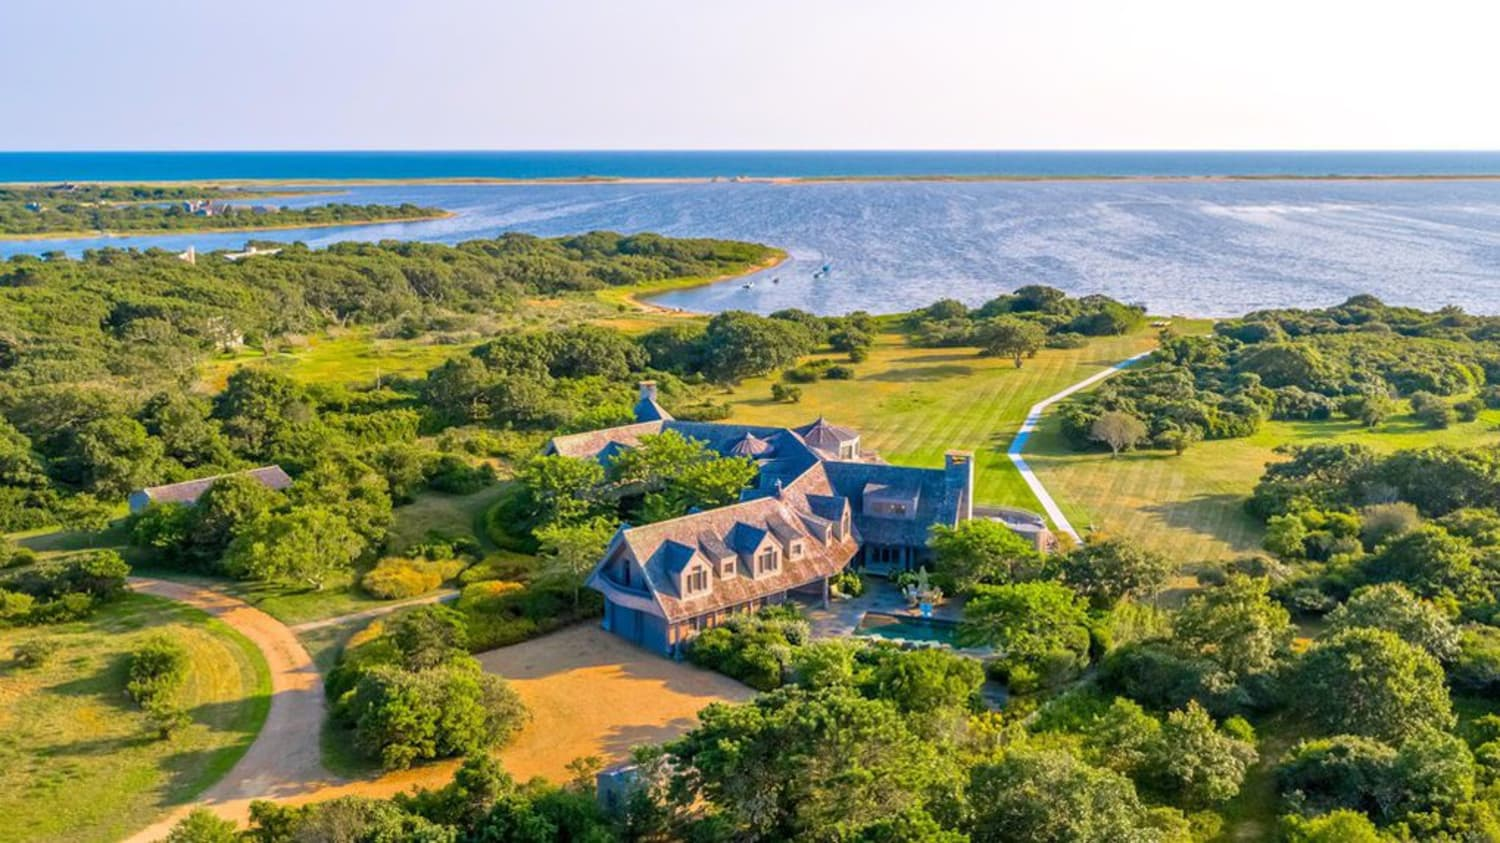 The Obamas Are Reportedly Buying This Vacation Home on Martha's Vineyard